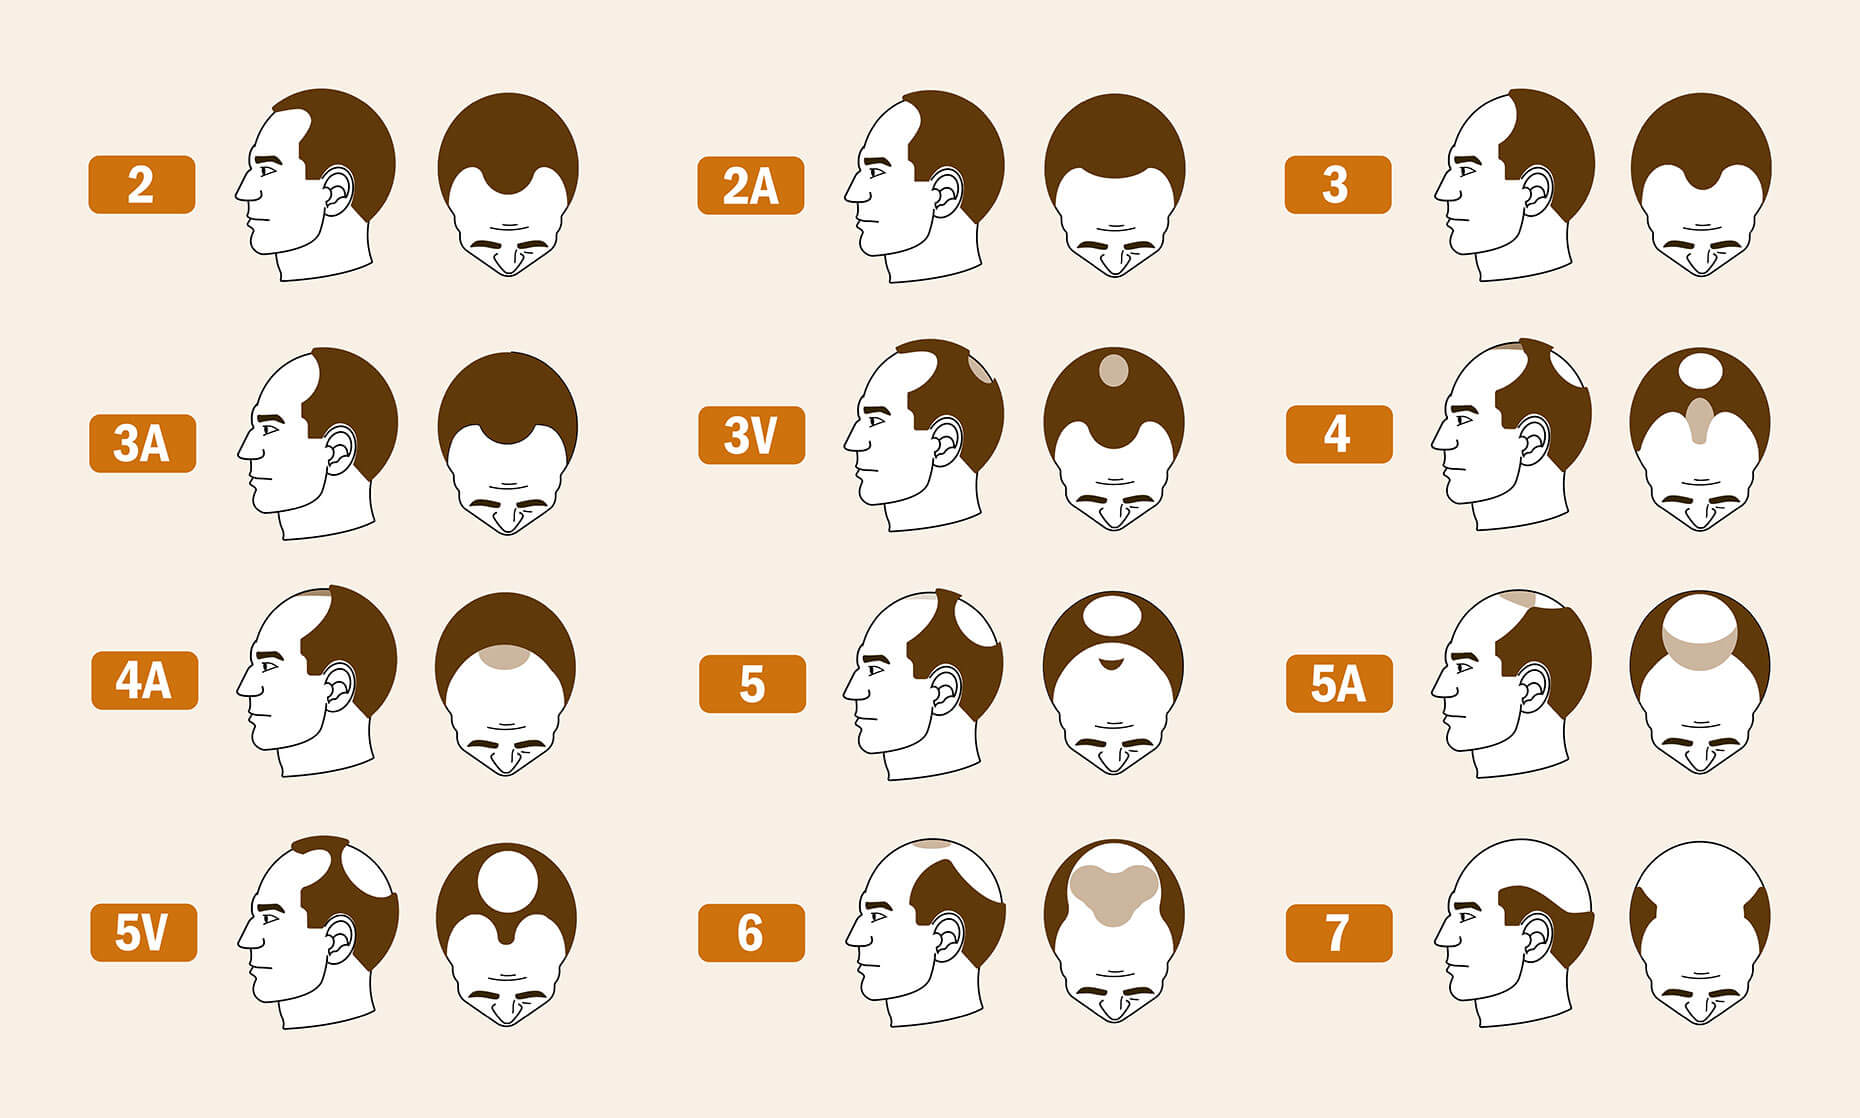 The Norwood-Hamilton stages of hair loss, broken down into 12 pairs of images